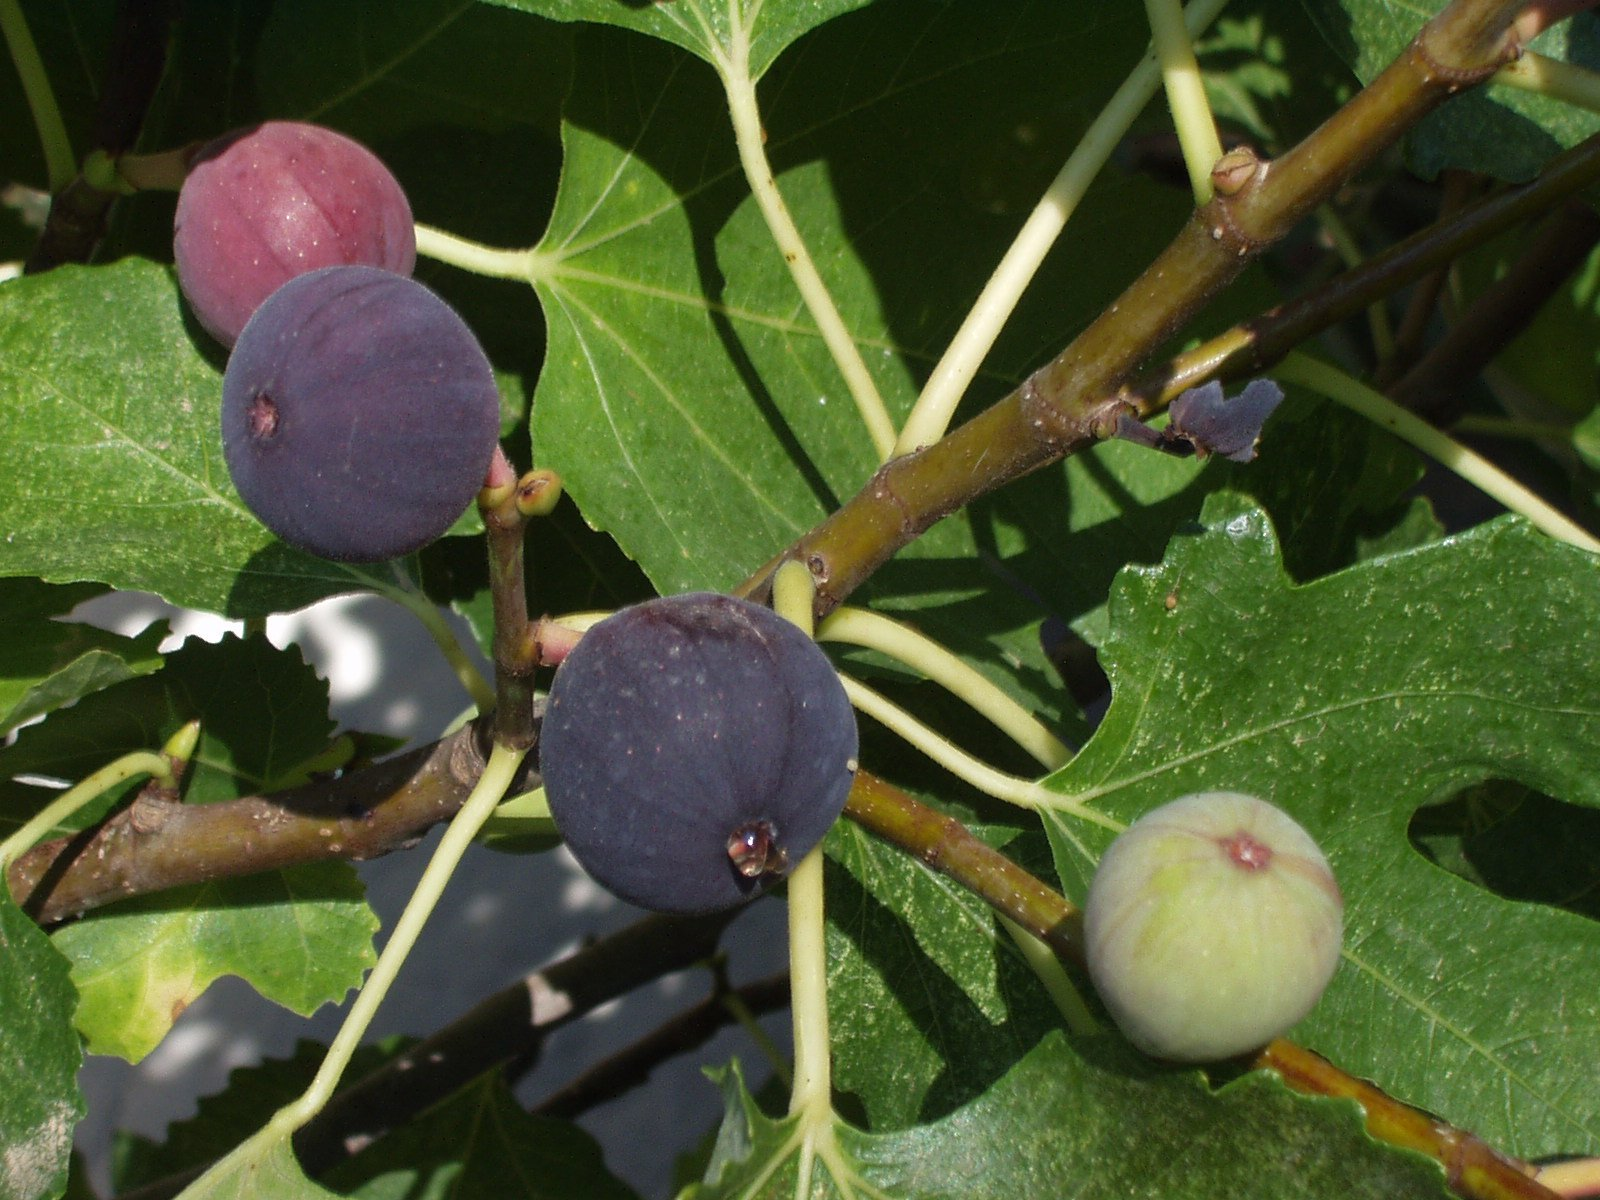 Planting And Caring For Fig Trees A Guide Lawnstarter